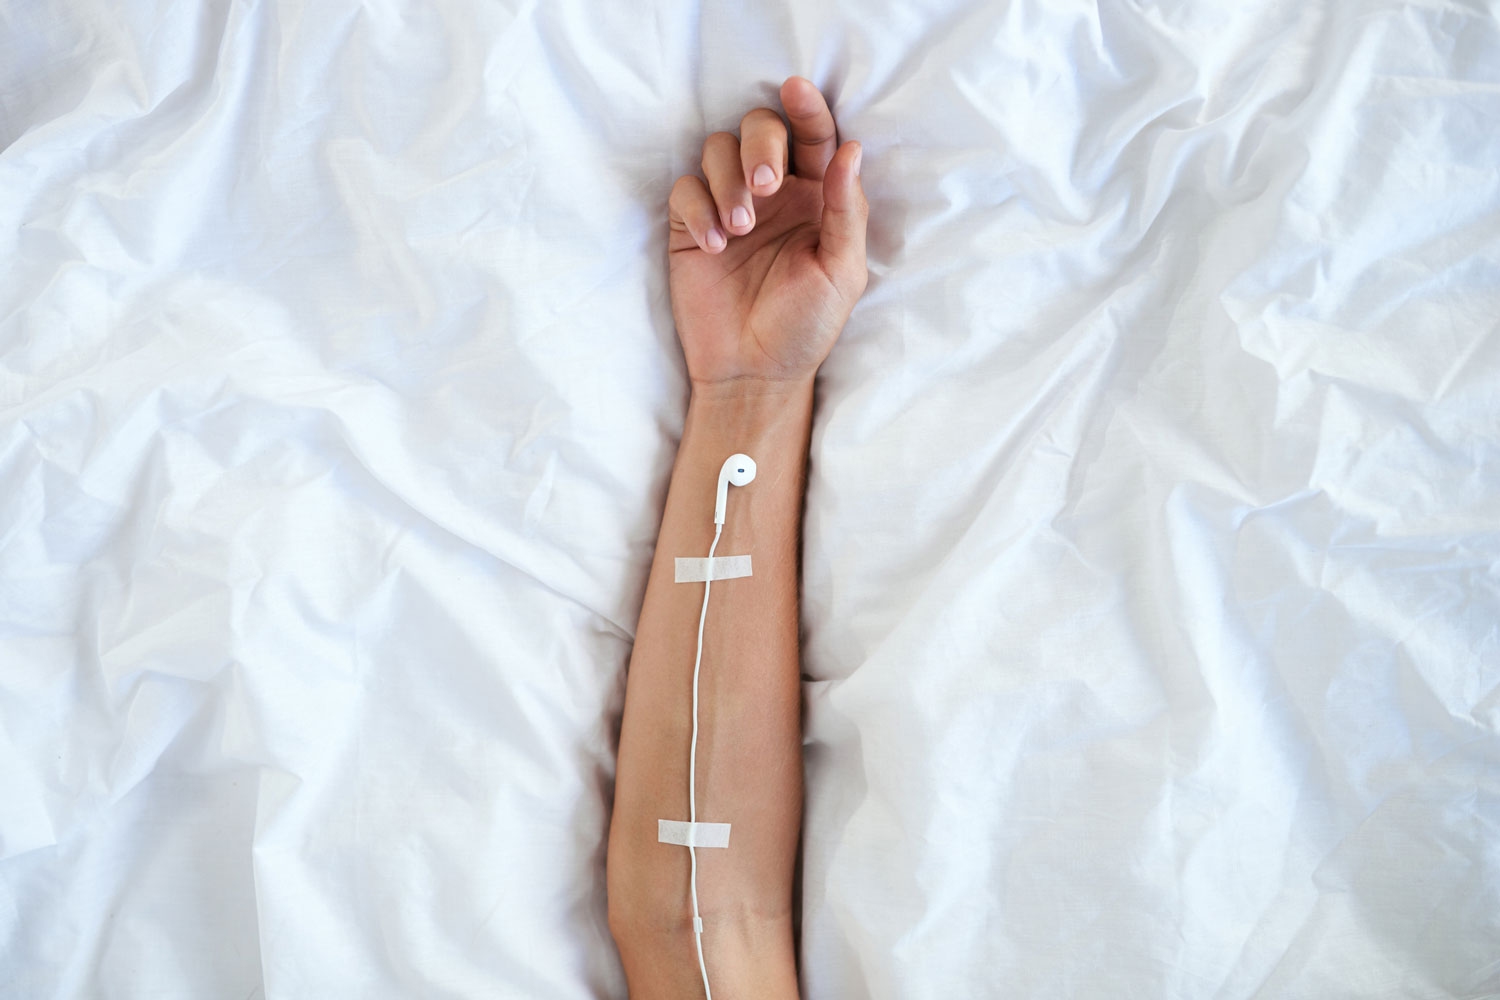 3 Music-Related Health Risks